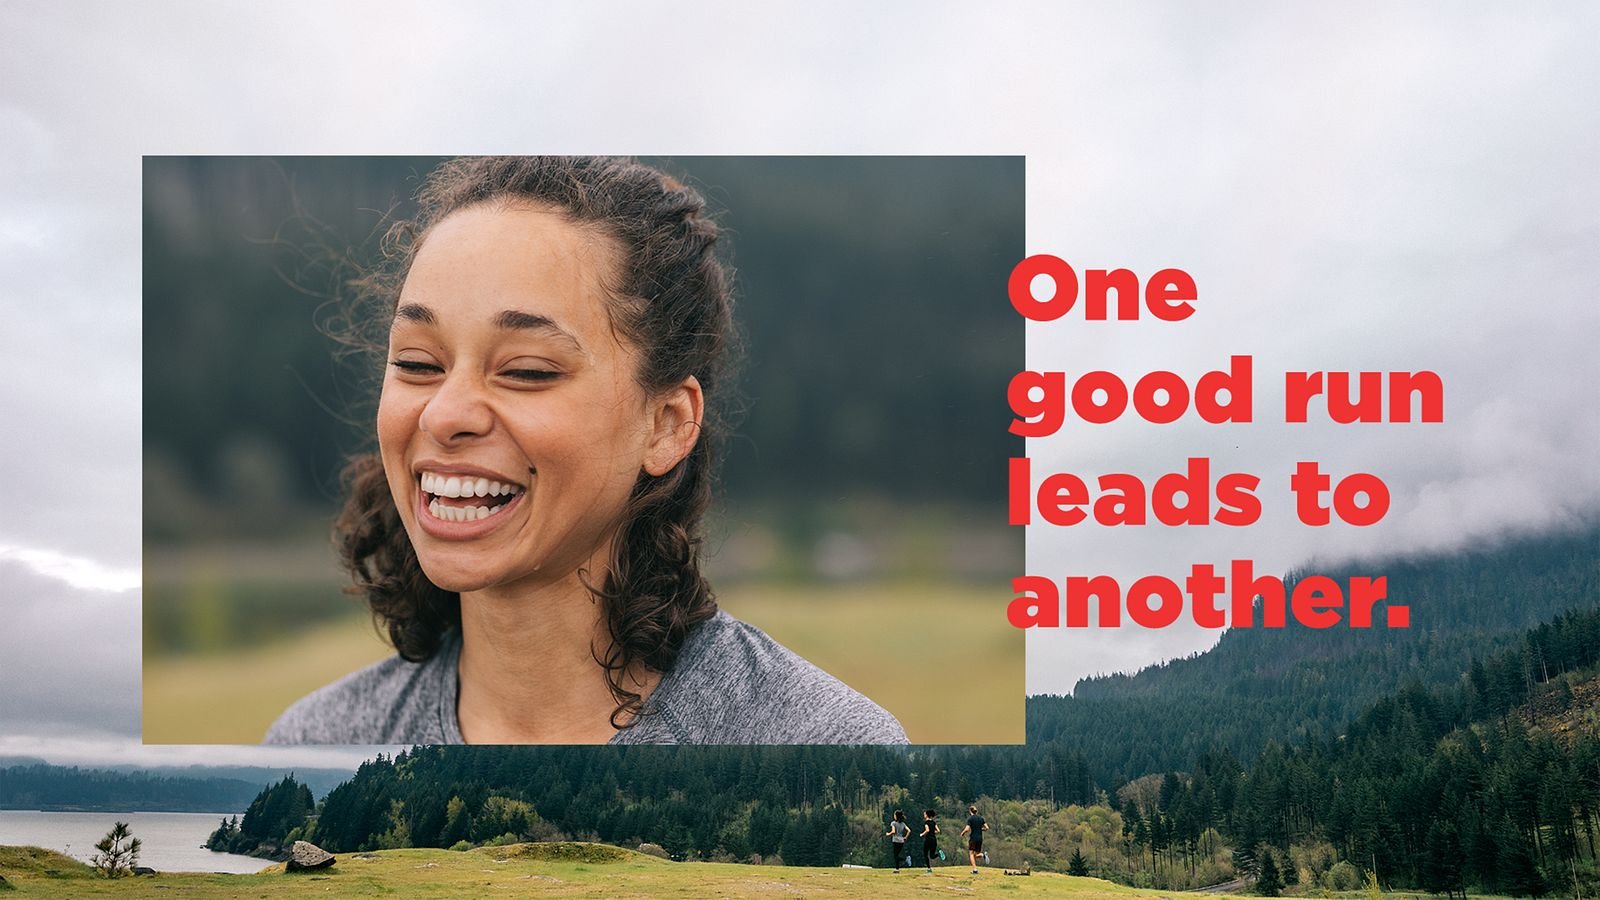 A woman smiles, mid-run. Three runners hit the trails in wooded nature. Text reads: One good run leads to another.